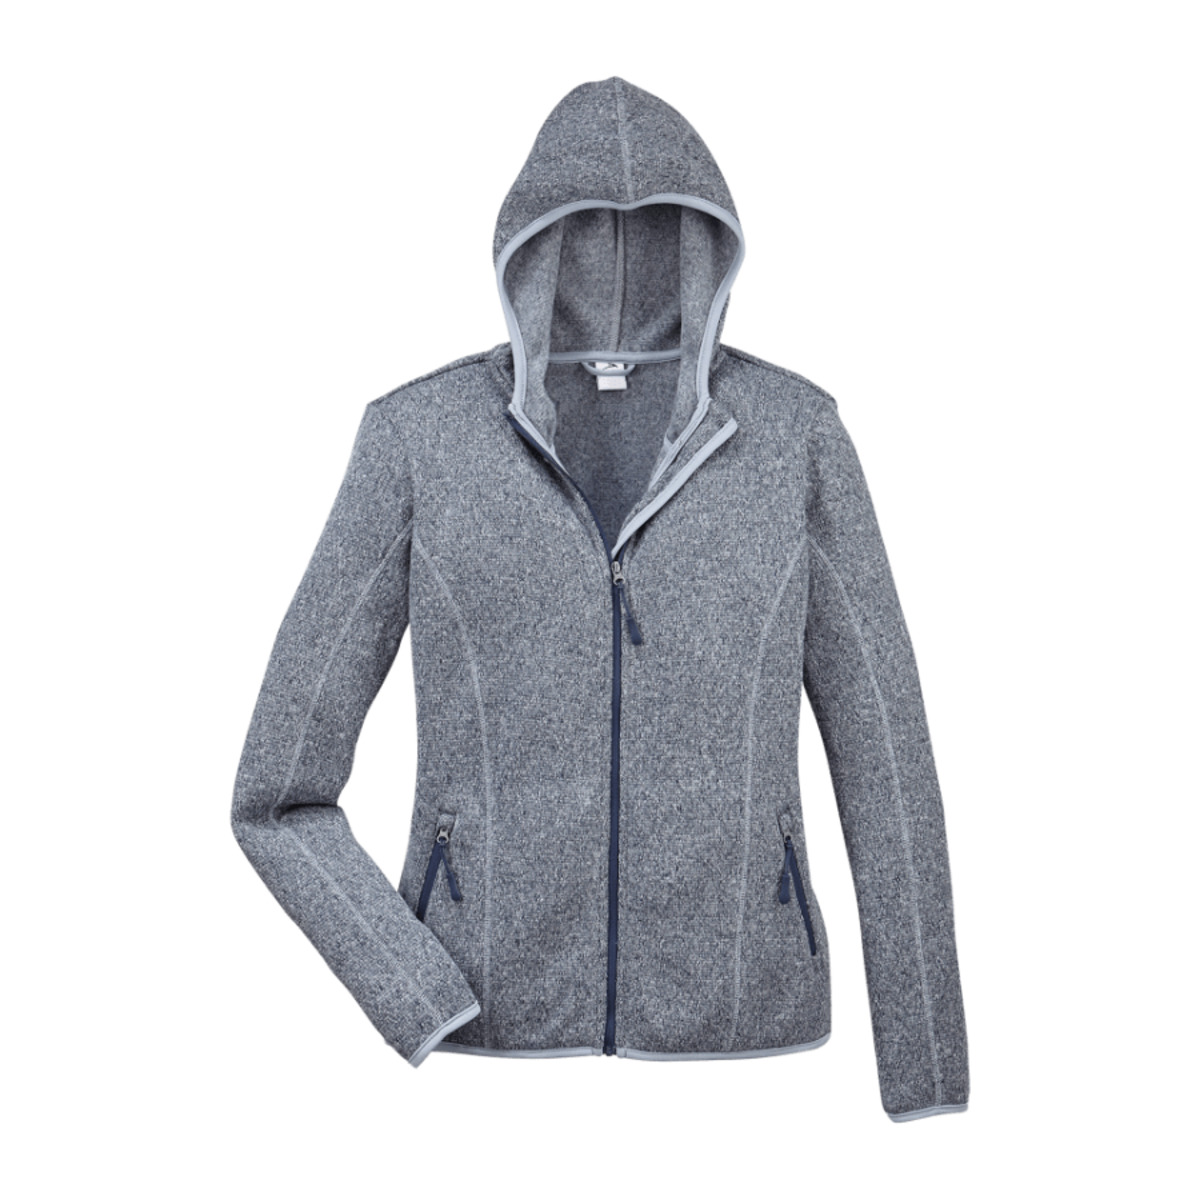 Bild 2 von ACTIVE TOUCH  	   Strick-Fleecejacke